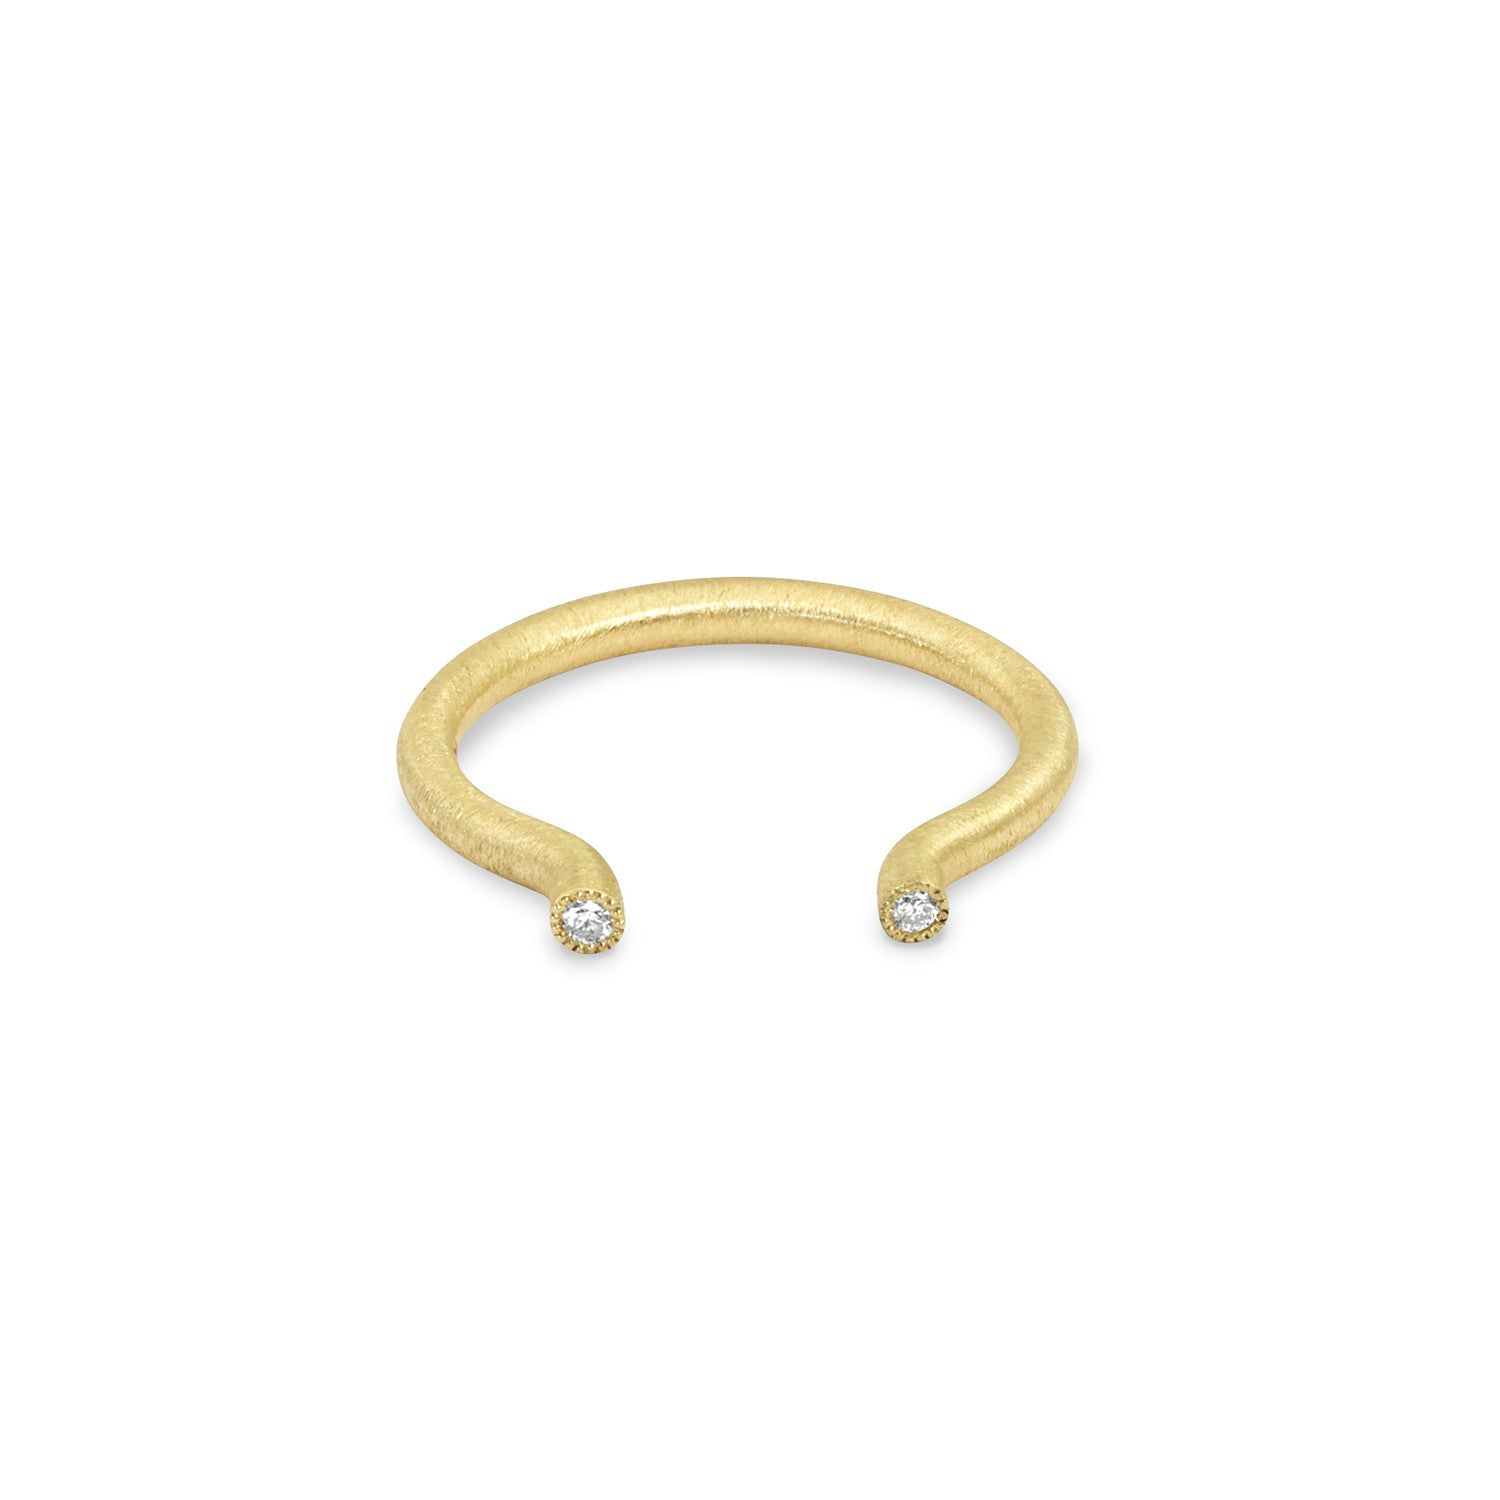 Small Gauge Round Solid Tube Ring, Jewelry - Katherine & Josephine